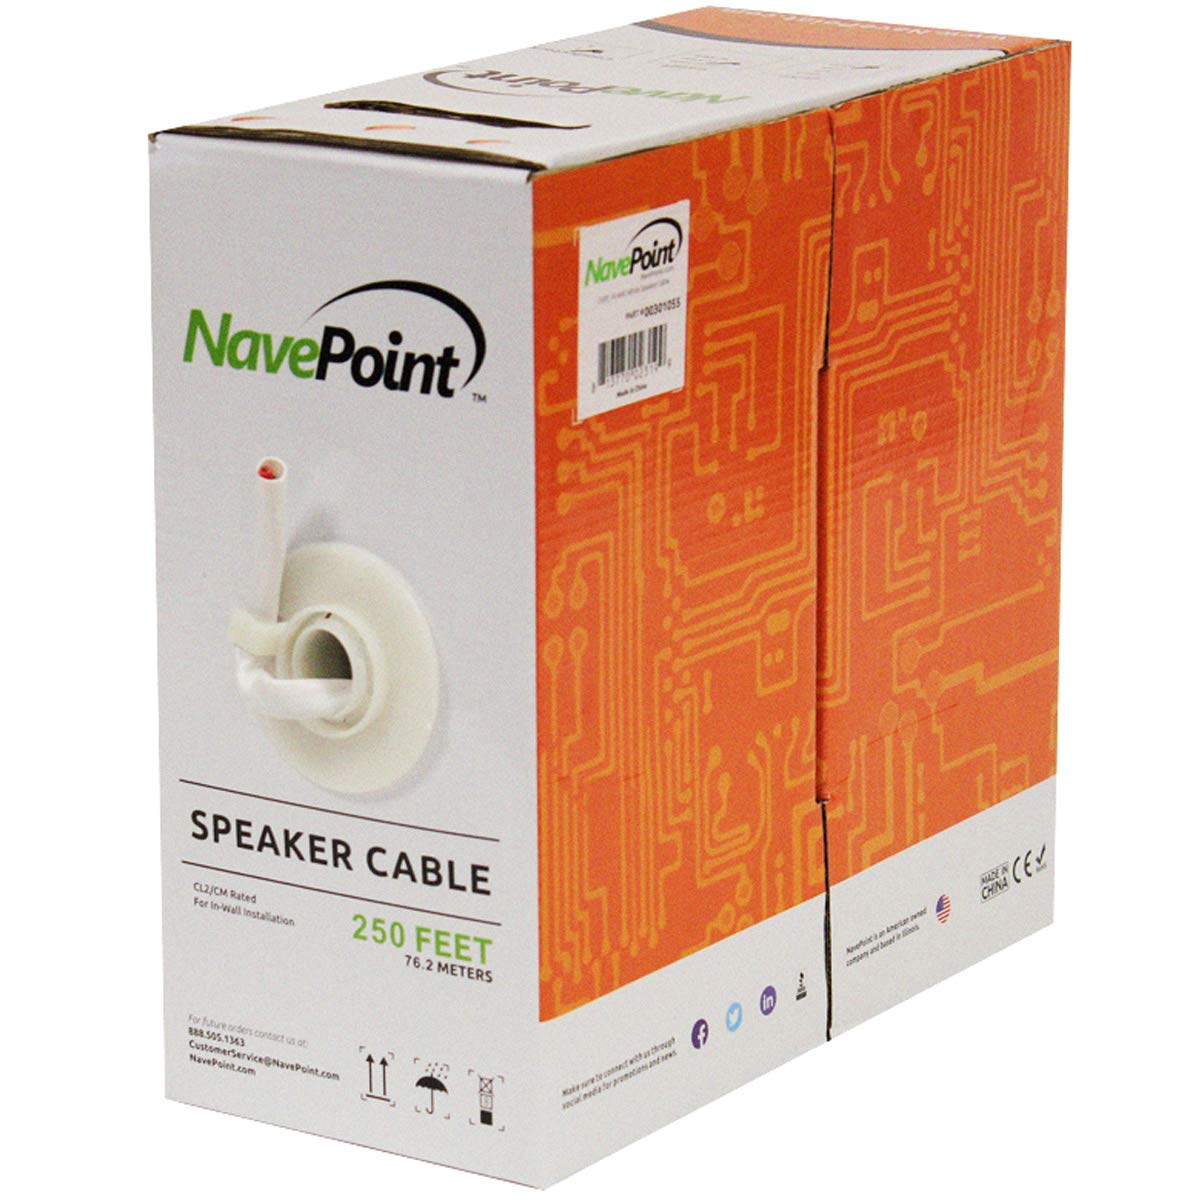 NavePoint 250ft in Wall Audio Speaker Cable Wire CL2 16/2 AWG Gauge 2 Conductor Bulk White by NavePoint